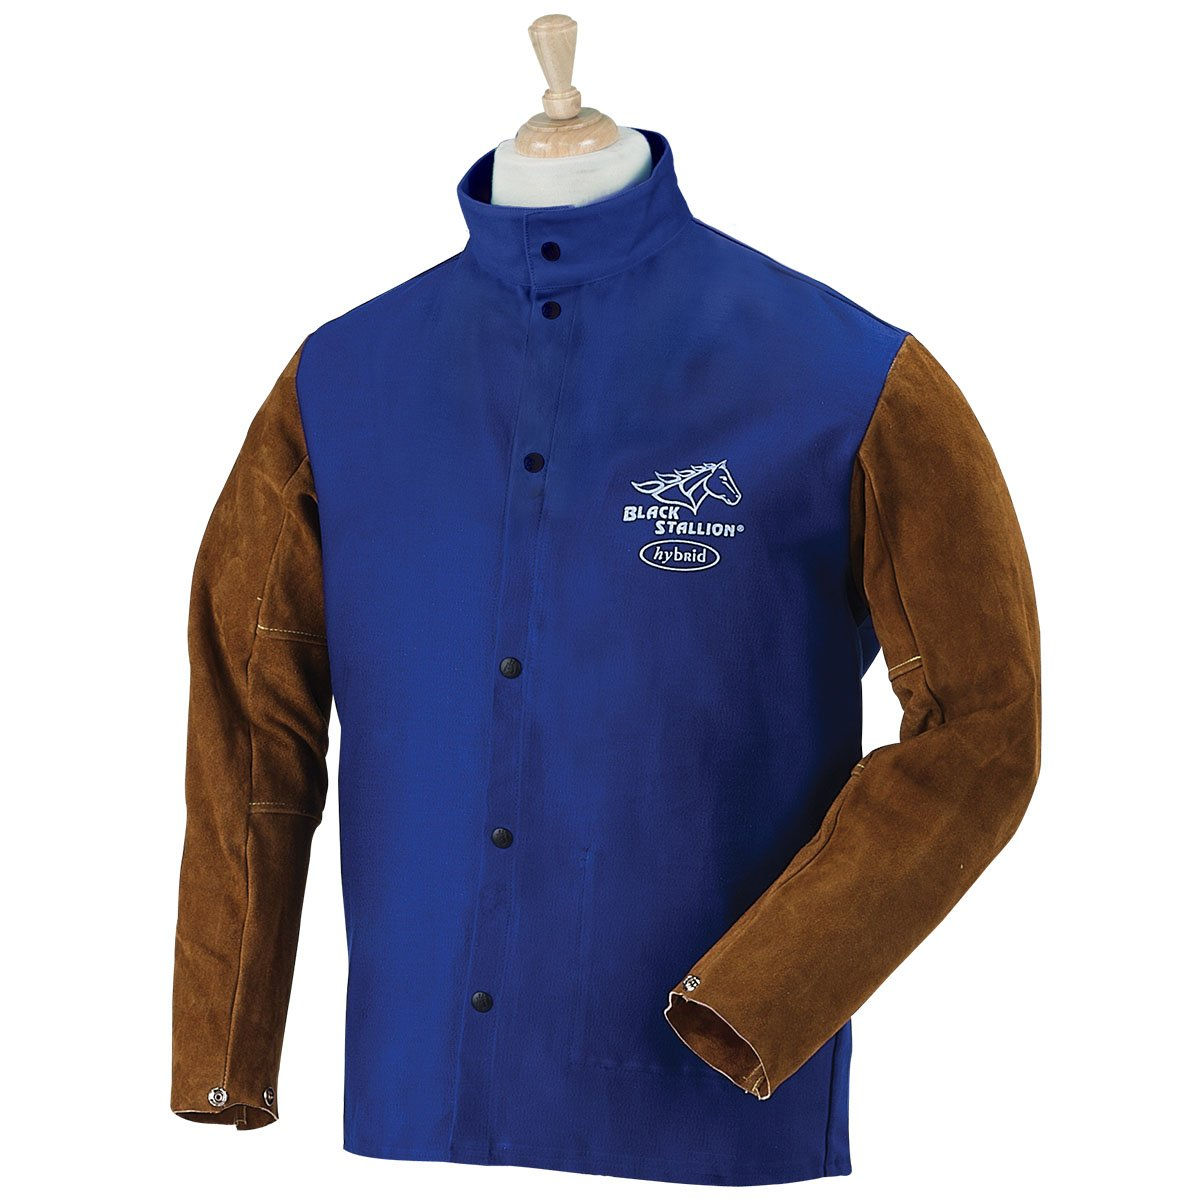 BLACK STALLION Hybrid 9 oz. FR and Cowhide Welding Coat - 30'' Royal Blue/Brown - (Medium) by Revco